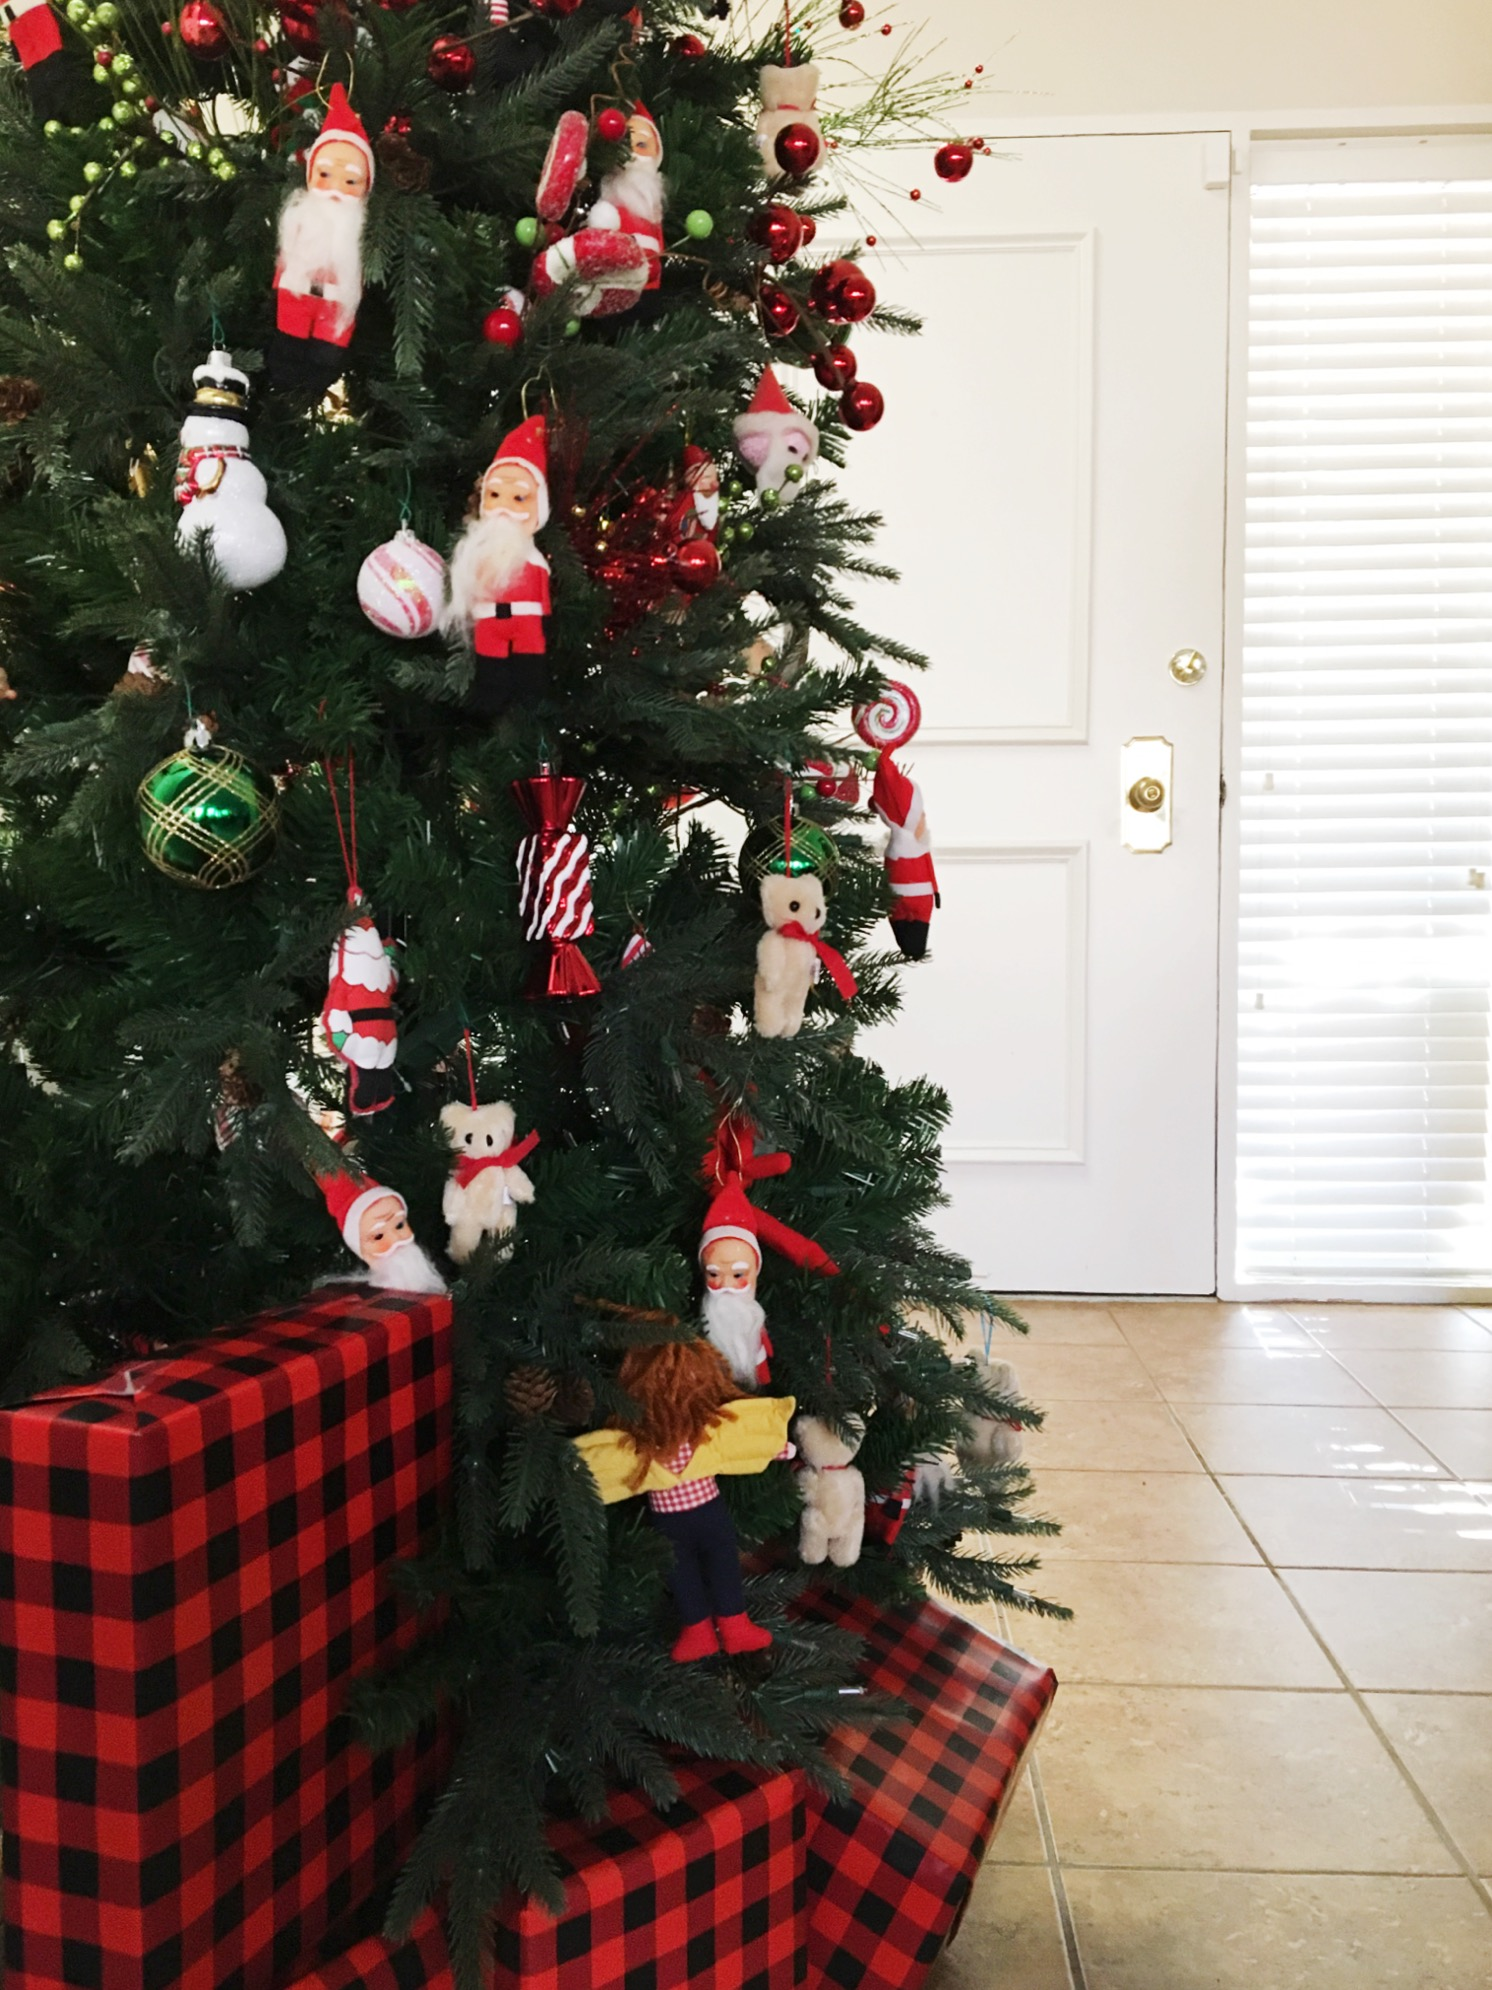 This is Daly's mom's Christmas tree decorated with ornaments from her great granny Alice's collection. How sweet!